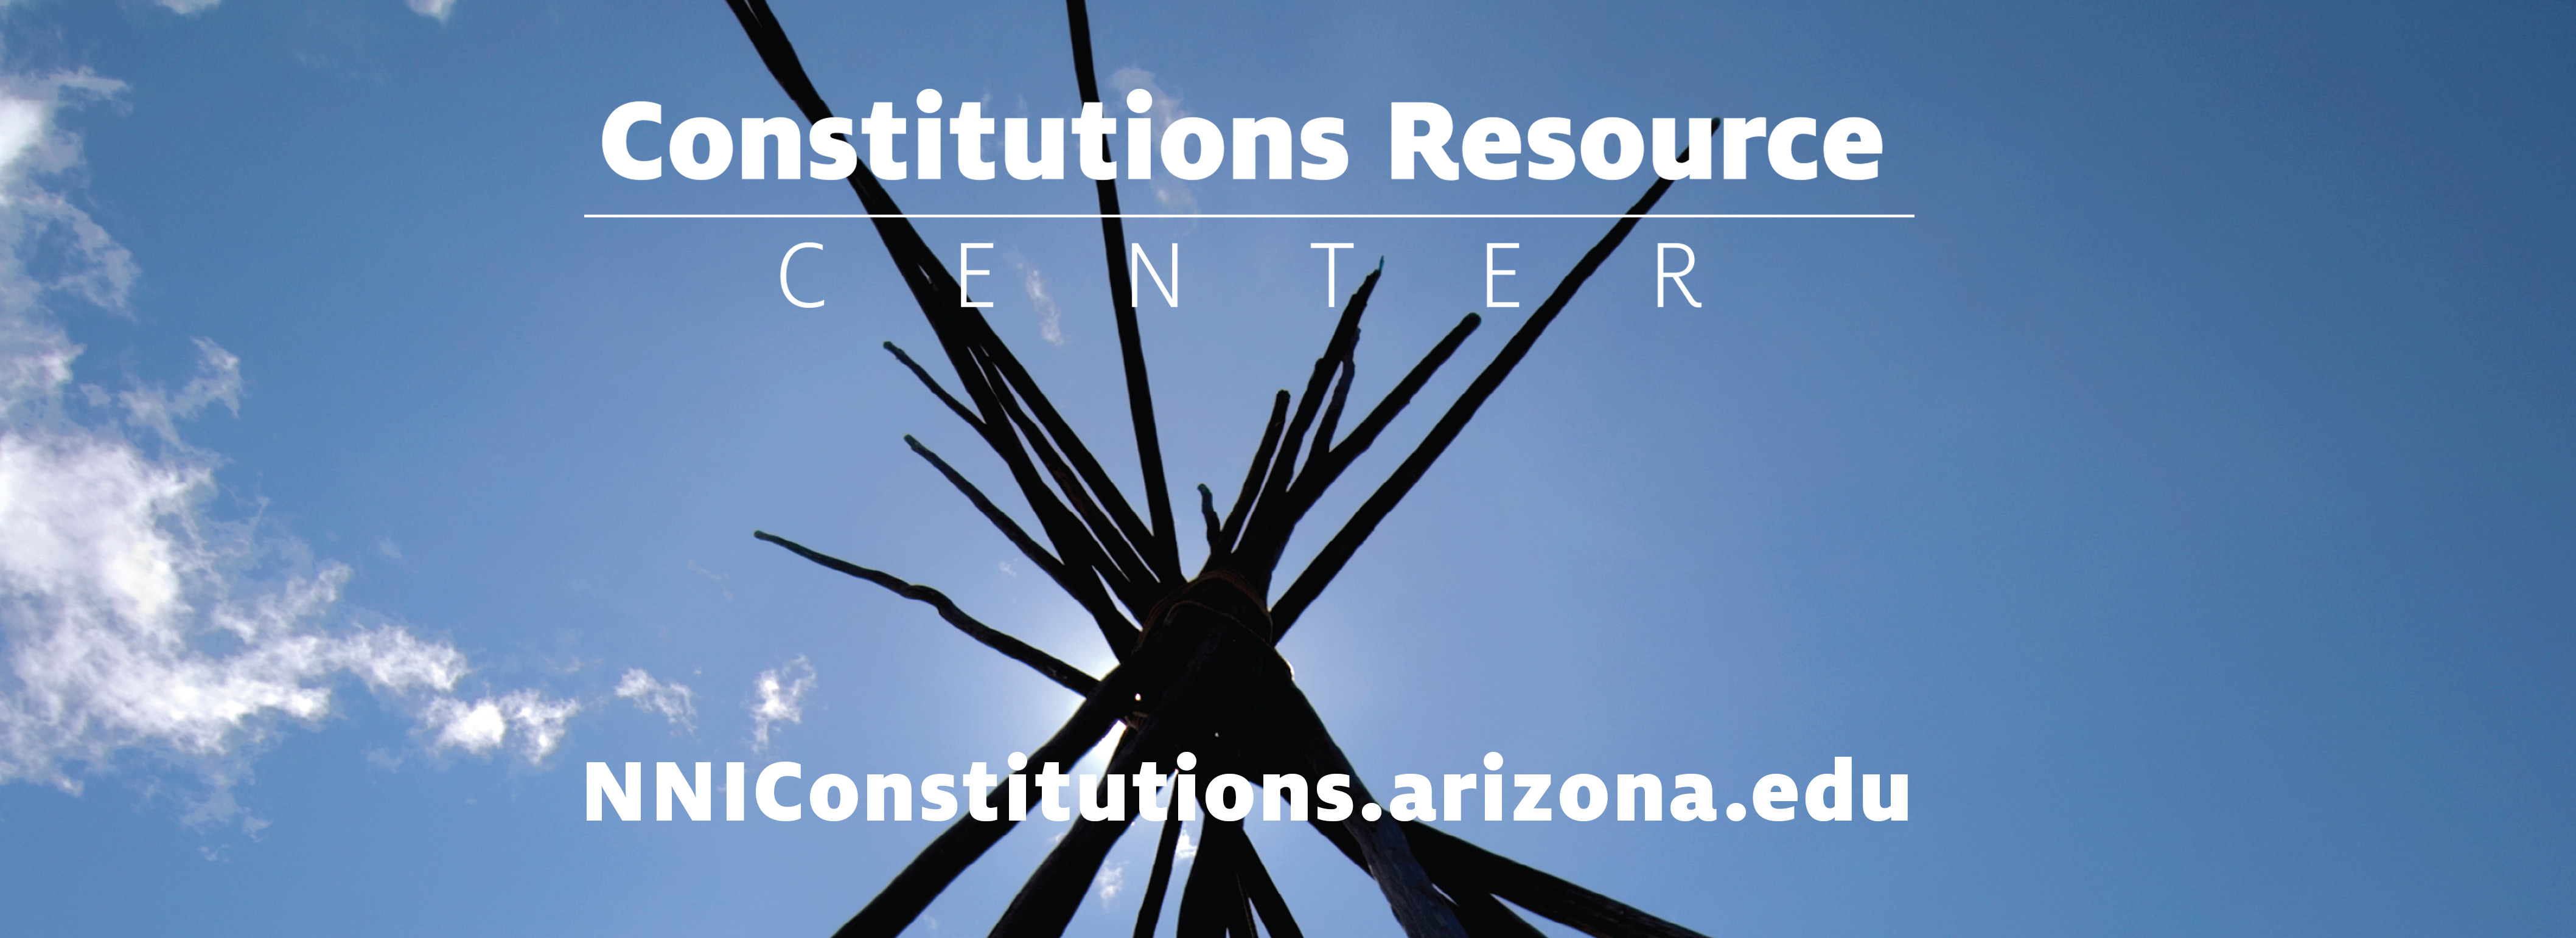 NNI launches brand new Constitutions Resource Center website!